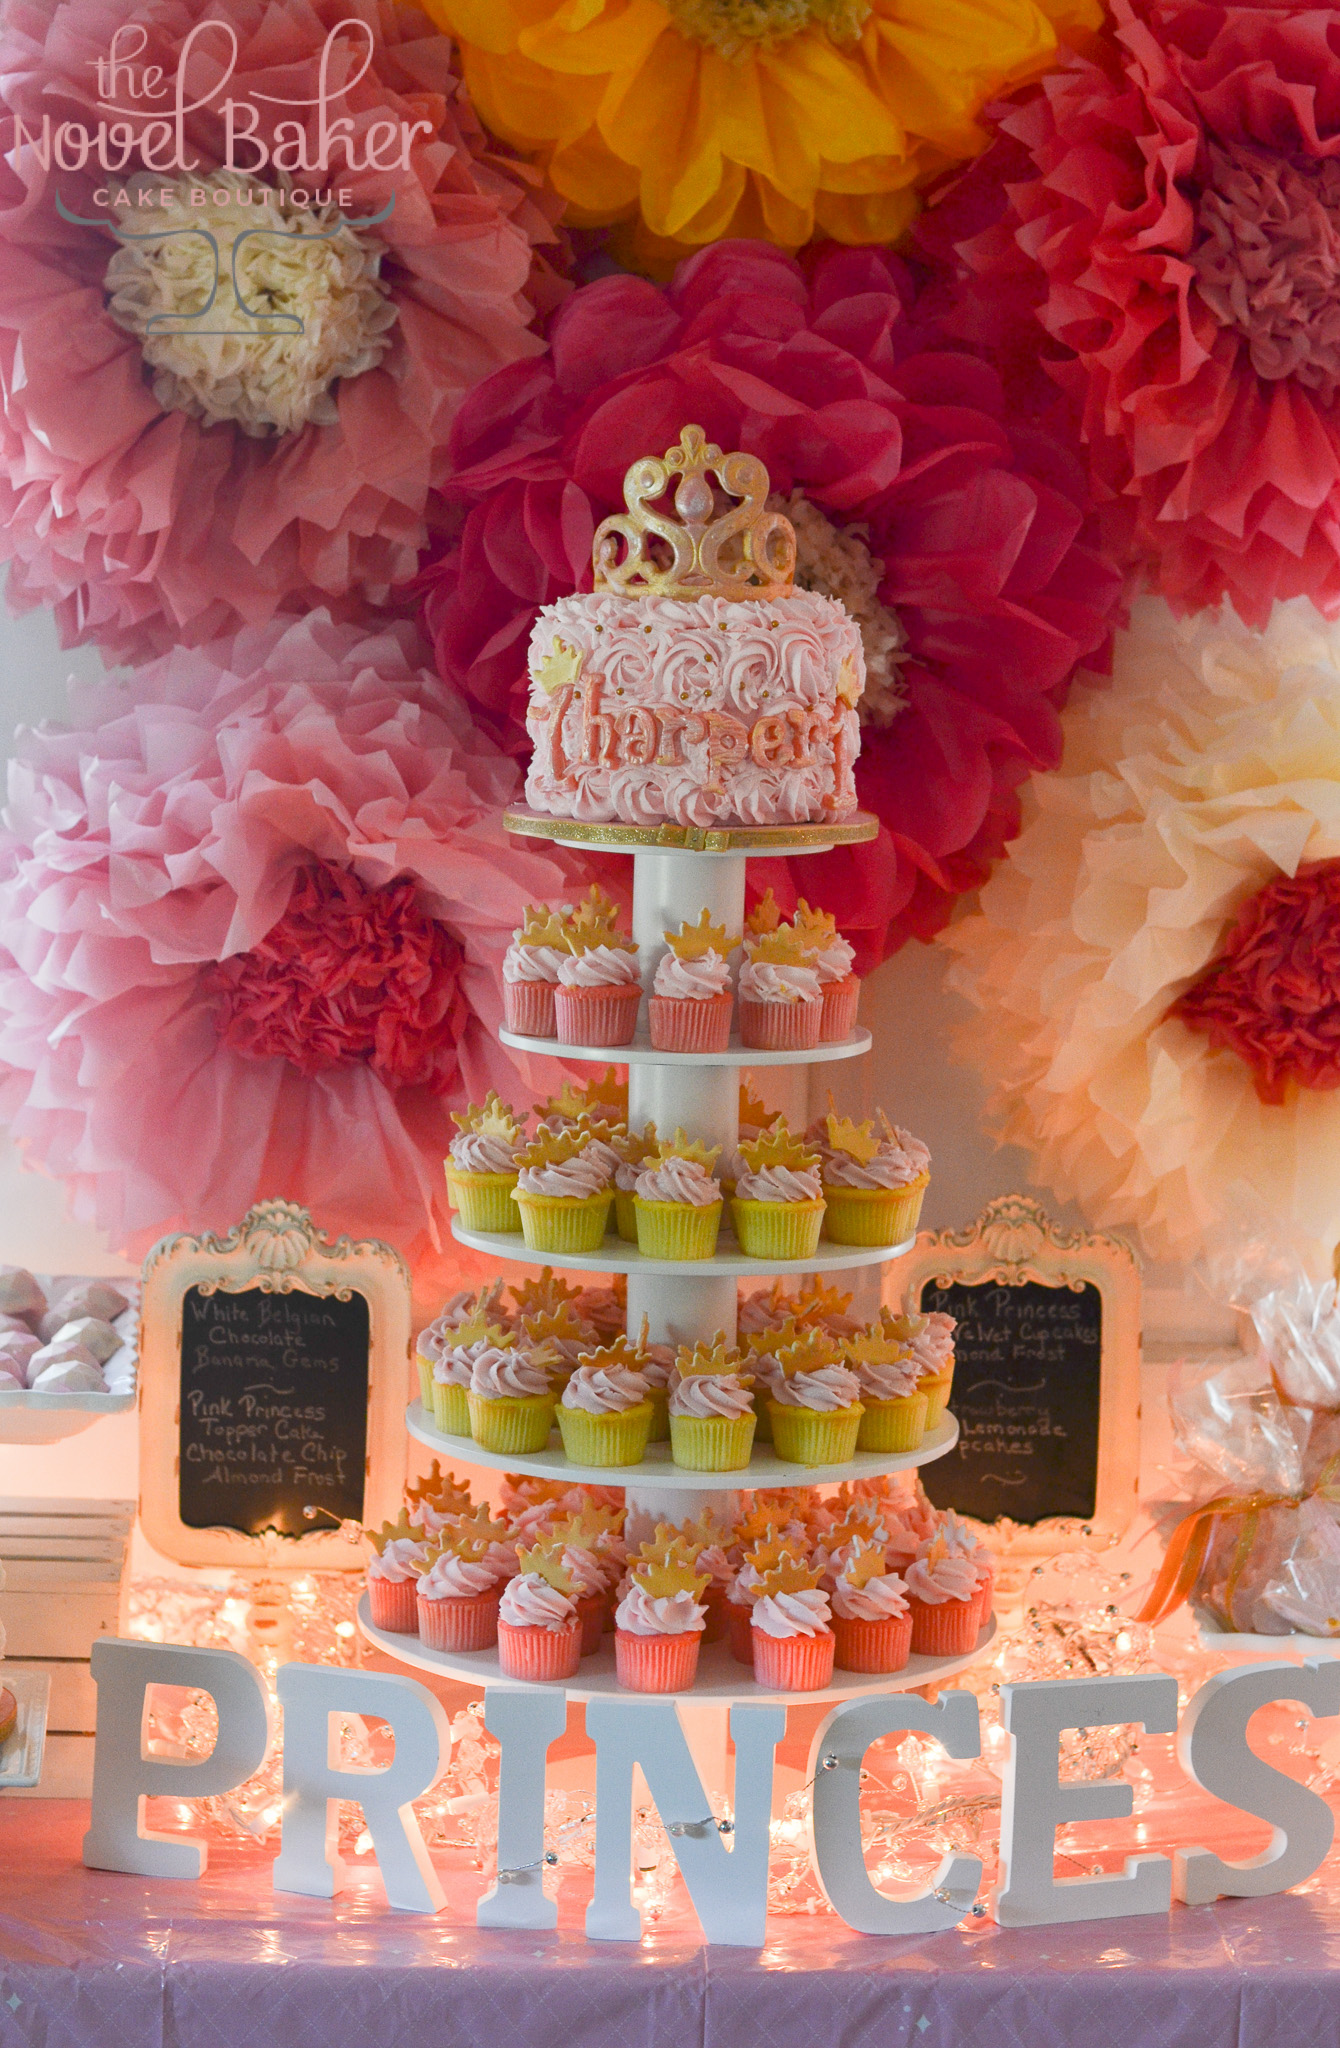 5 Tier Cupcake tower filled with pink minis topped with gold crowns and a top tier Princess cake of pink rosettes, pearl centers, and a gold rubbed tiara.